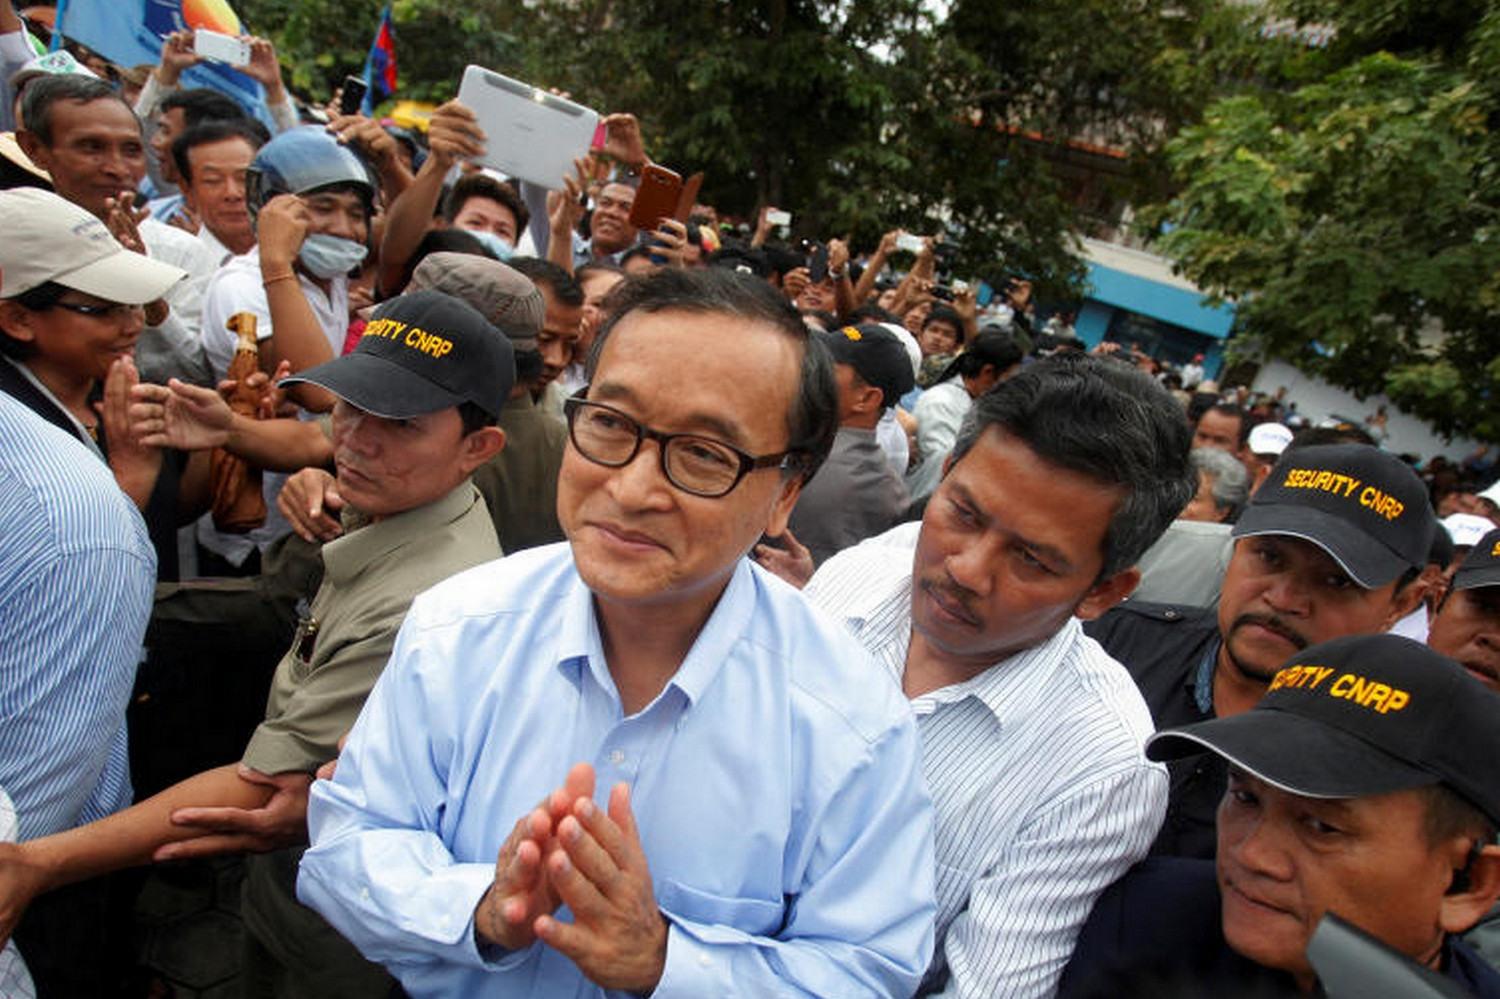 Sam Rainsy (centre), president of the opposition Cambodia National Rescue Party, greets supporters at Freedom Park in Phnom Penh on Oct 6, 2013. (Reuters file photo)